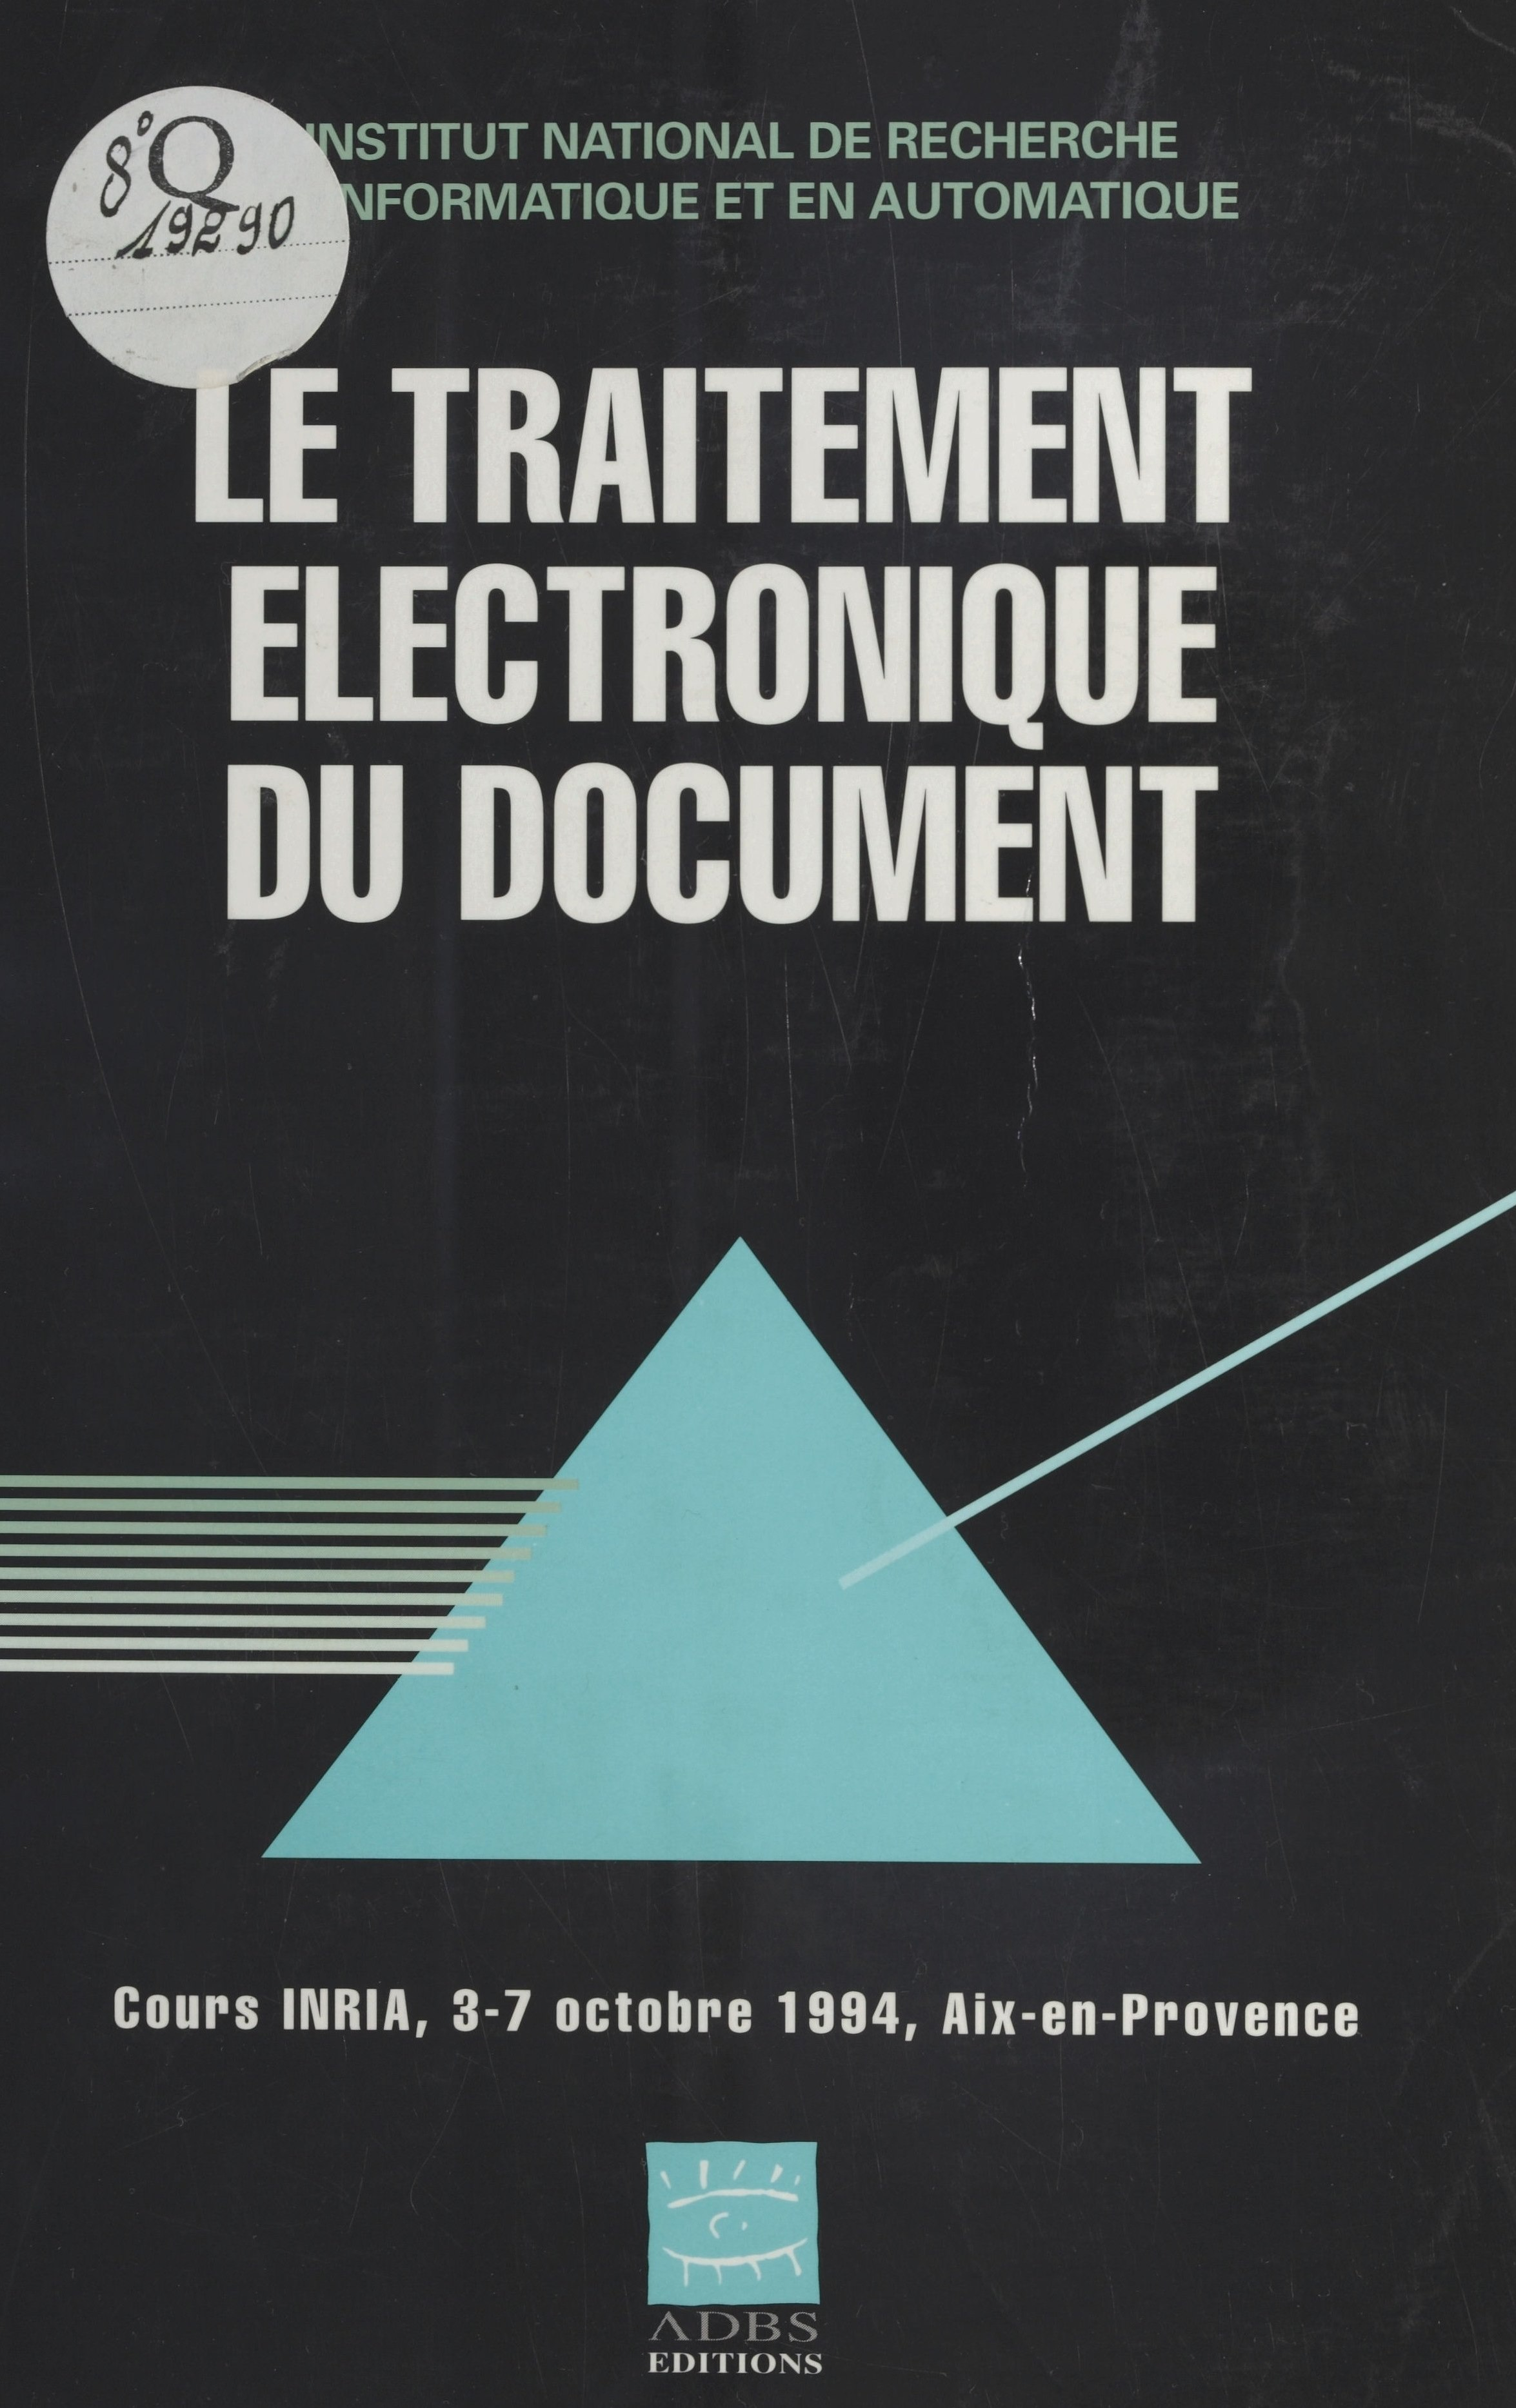 Le Traitement électronique du document